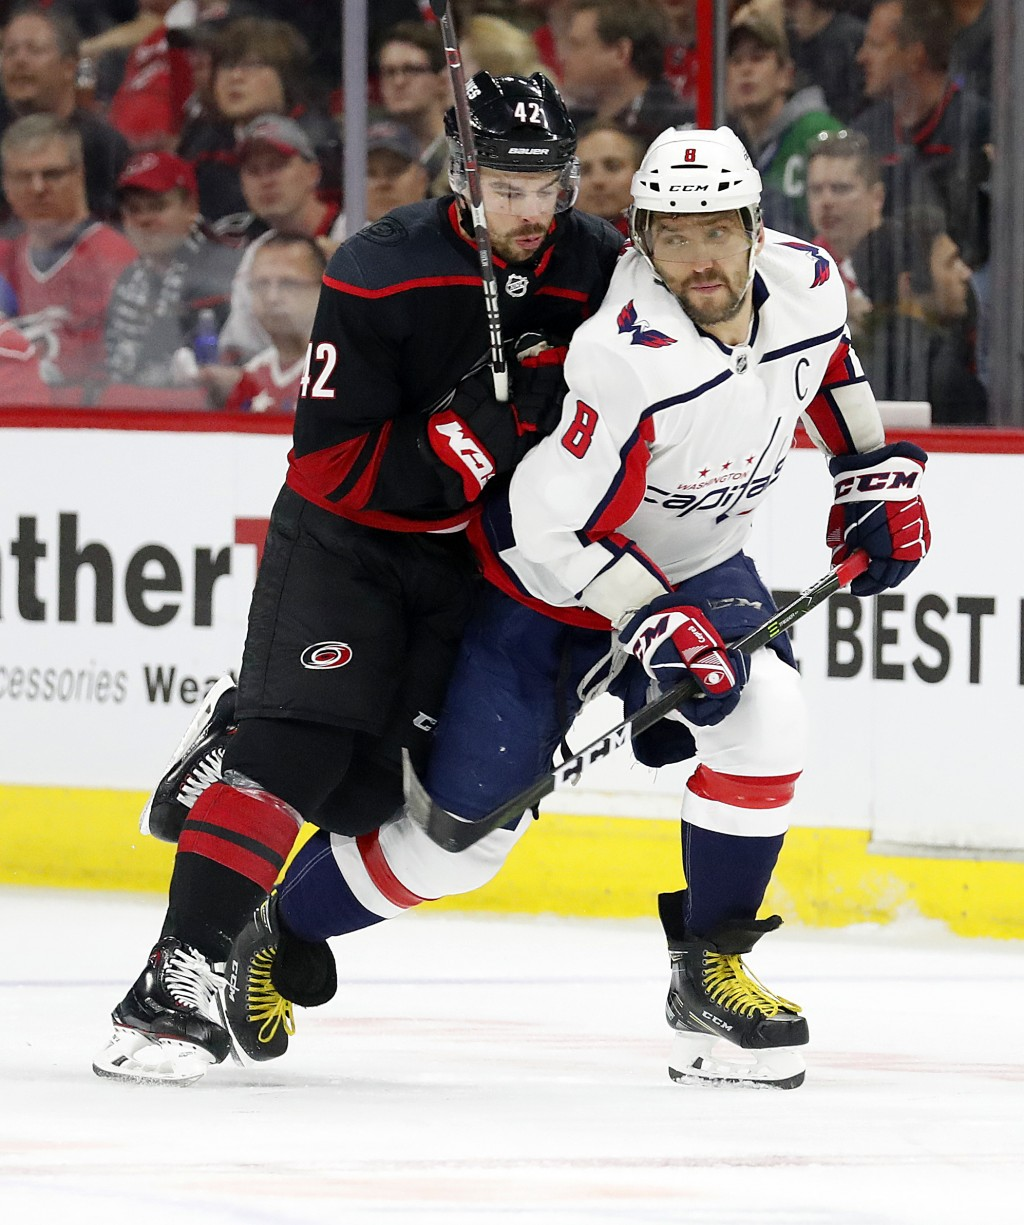 Washington Capitals' Alex Ovechkin (8), of Russia, tangles with Carolina Hurricanes' Greg McKegg (42) during the first period of Game 4 of an NHL hock